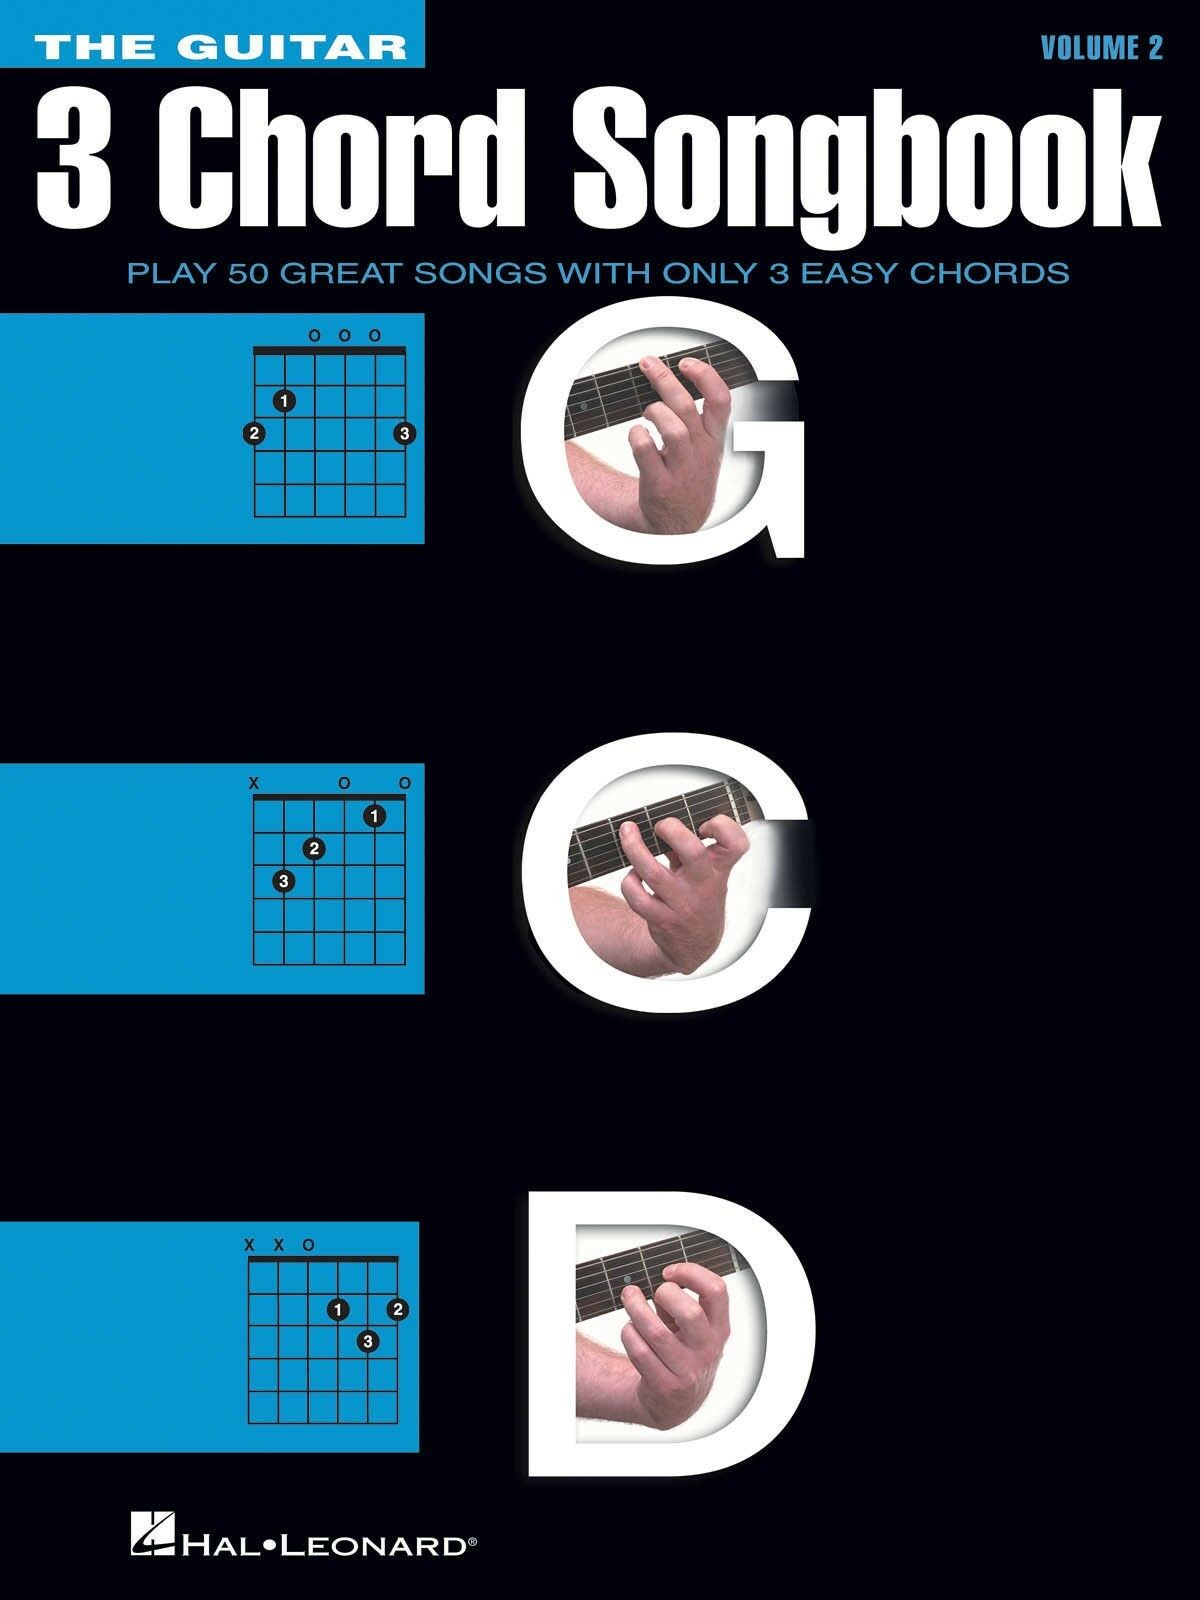 The Guitar Three Chord Songbook Melodylyricschords Volume 2 Sheet